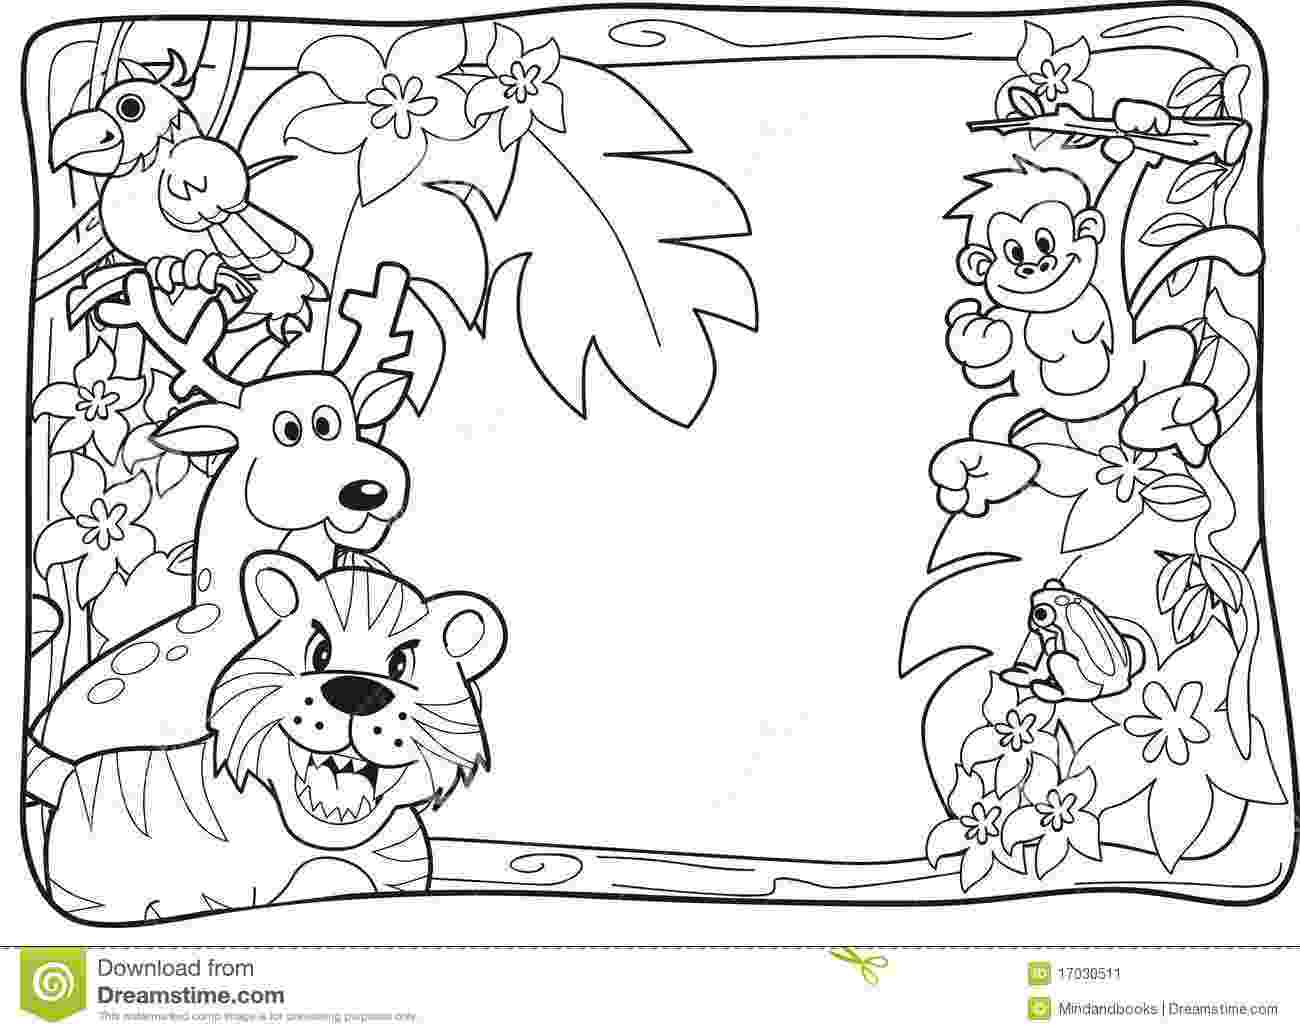 jungle animals coloring pages jungle animal coloring pages to download and print for free pages coloring jungle animals